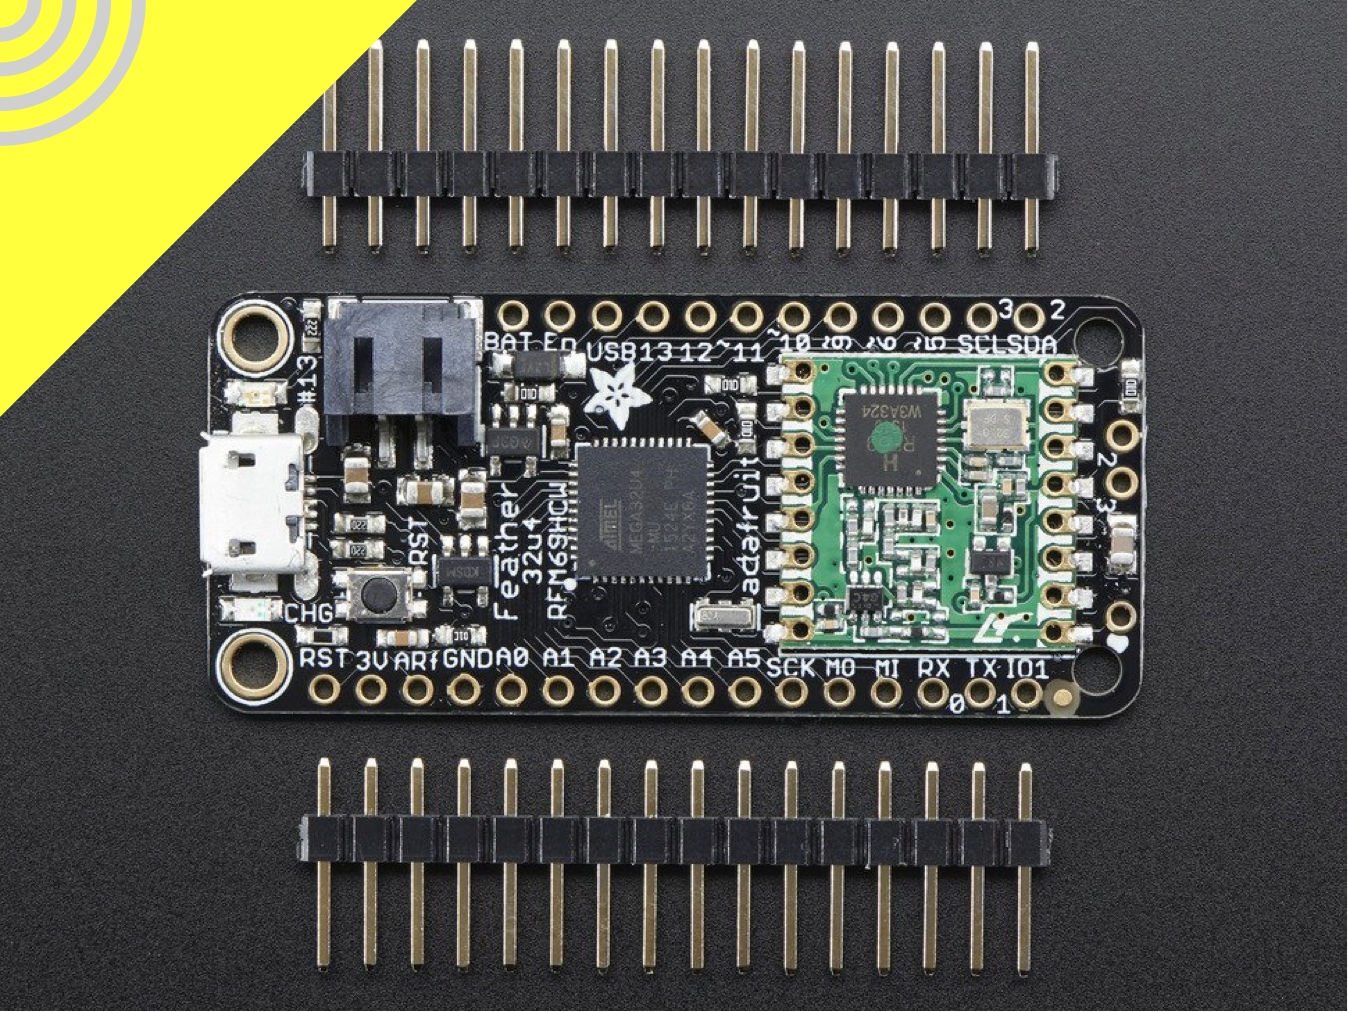 microcontrollers_feather-32u4-rfm69-900mhz.jpg